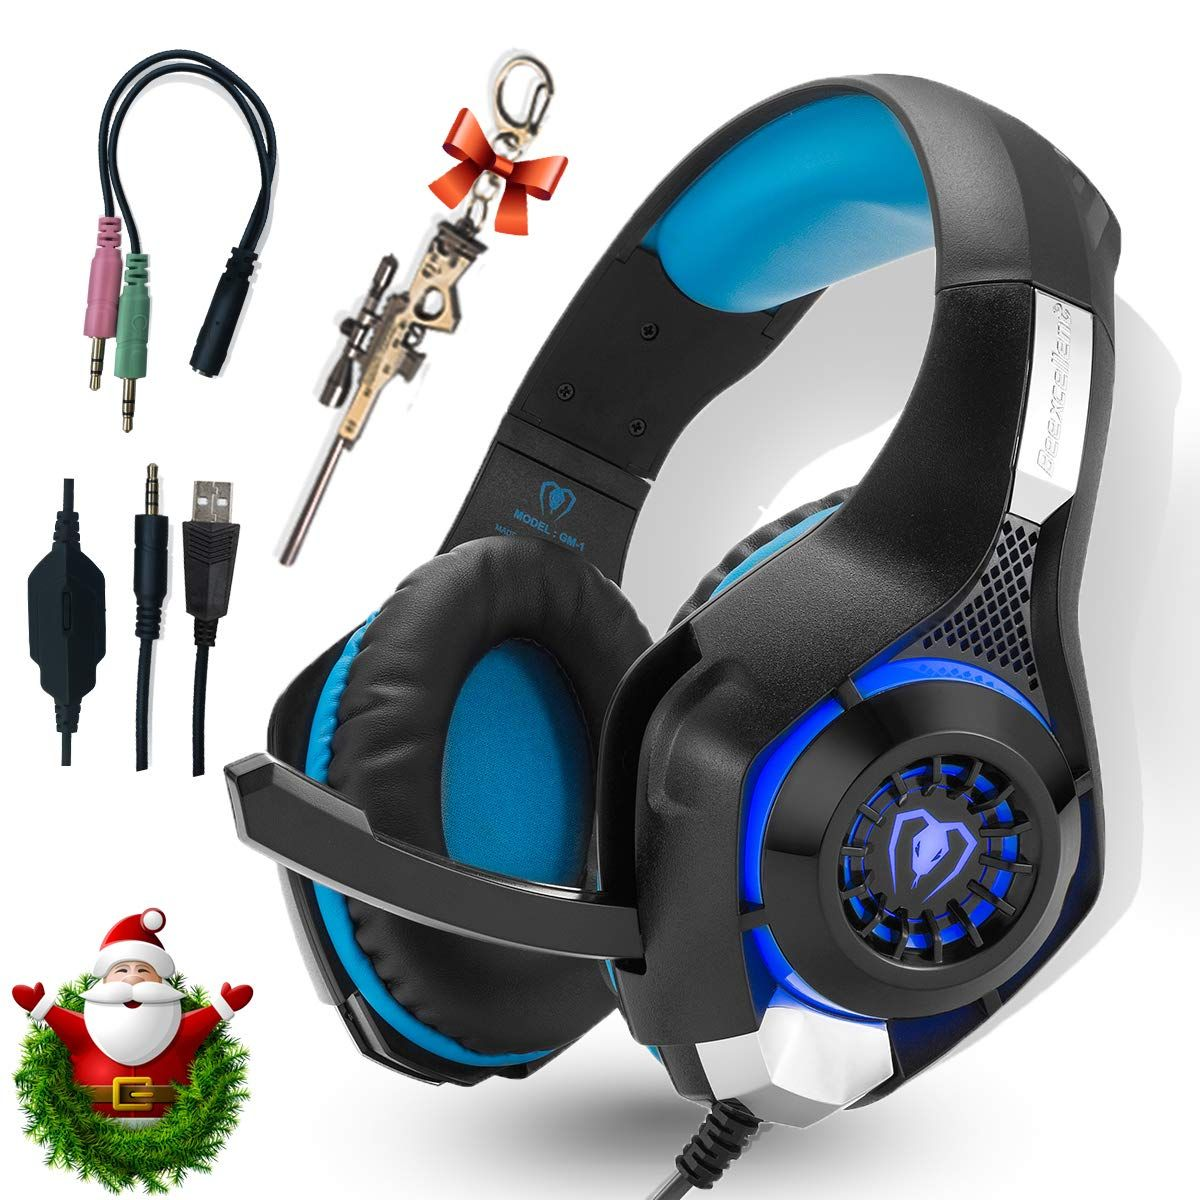 Professional Headset Gaming with Noise Cancelling Mic Used in PC